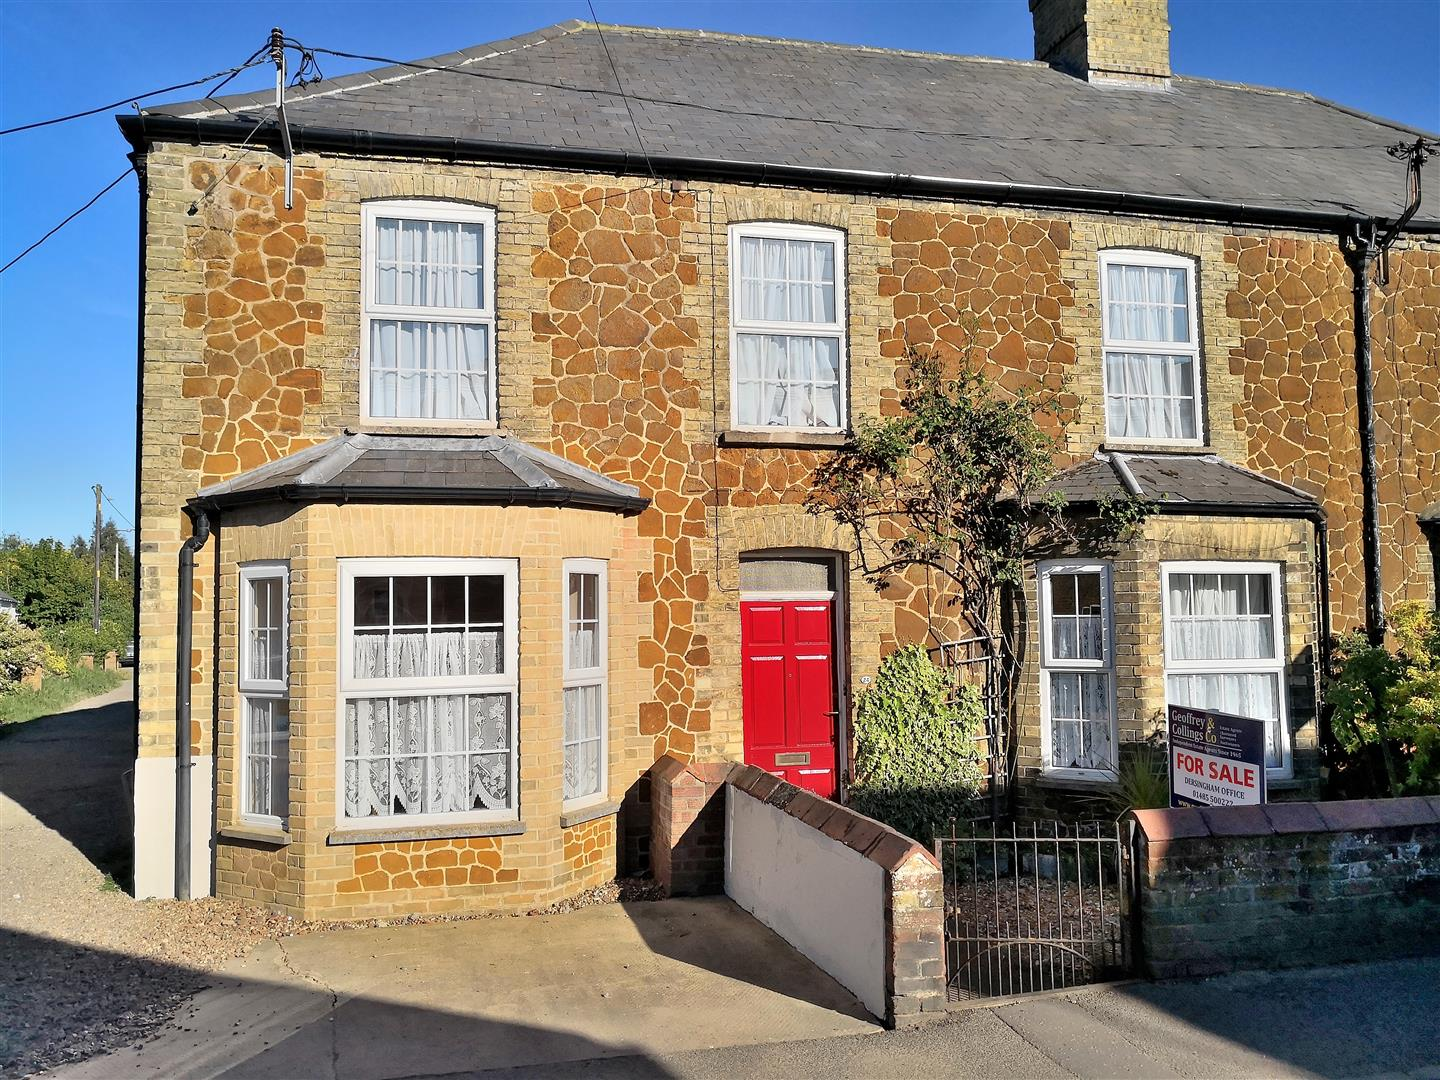 5 bed end of terrace house for sale in King's Lynn, PE31 7EP  - Property Image 1